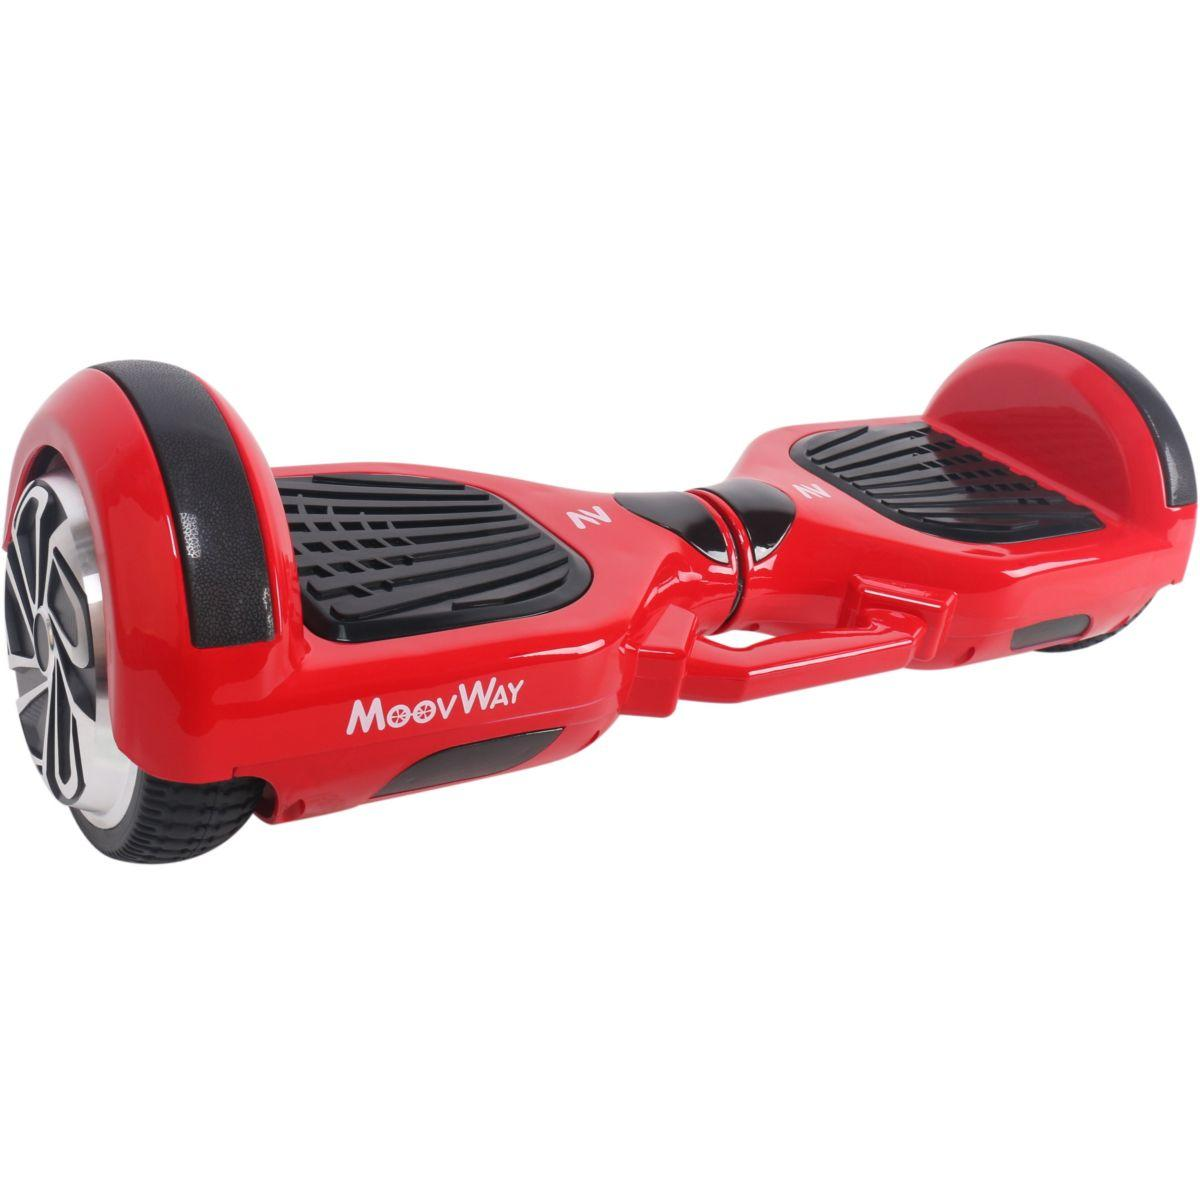 Hoverboard moovway m3 rouge (photo)